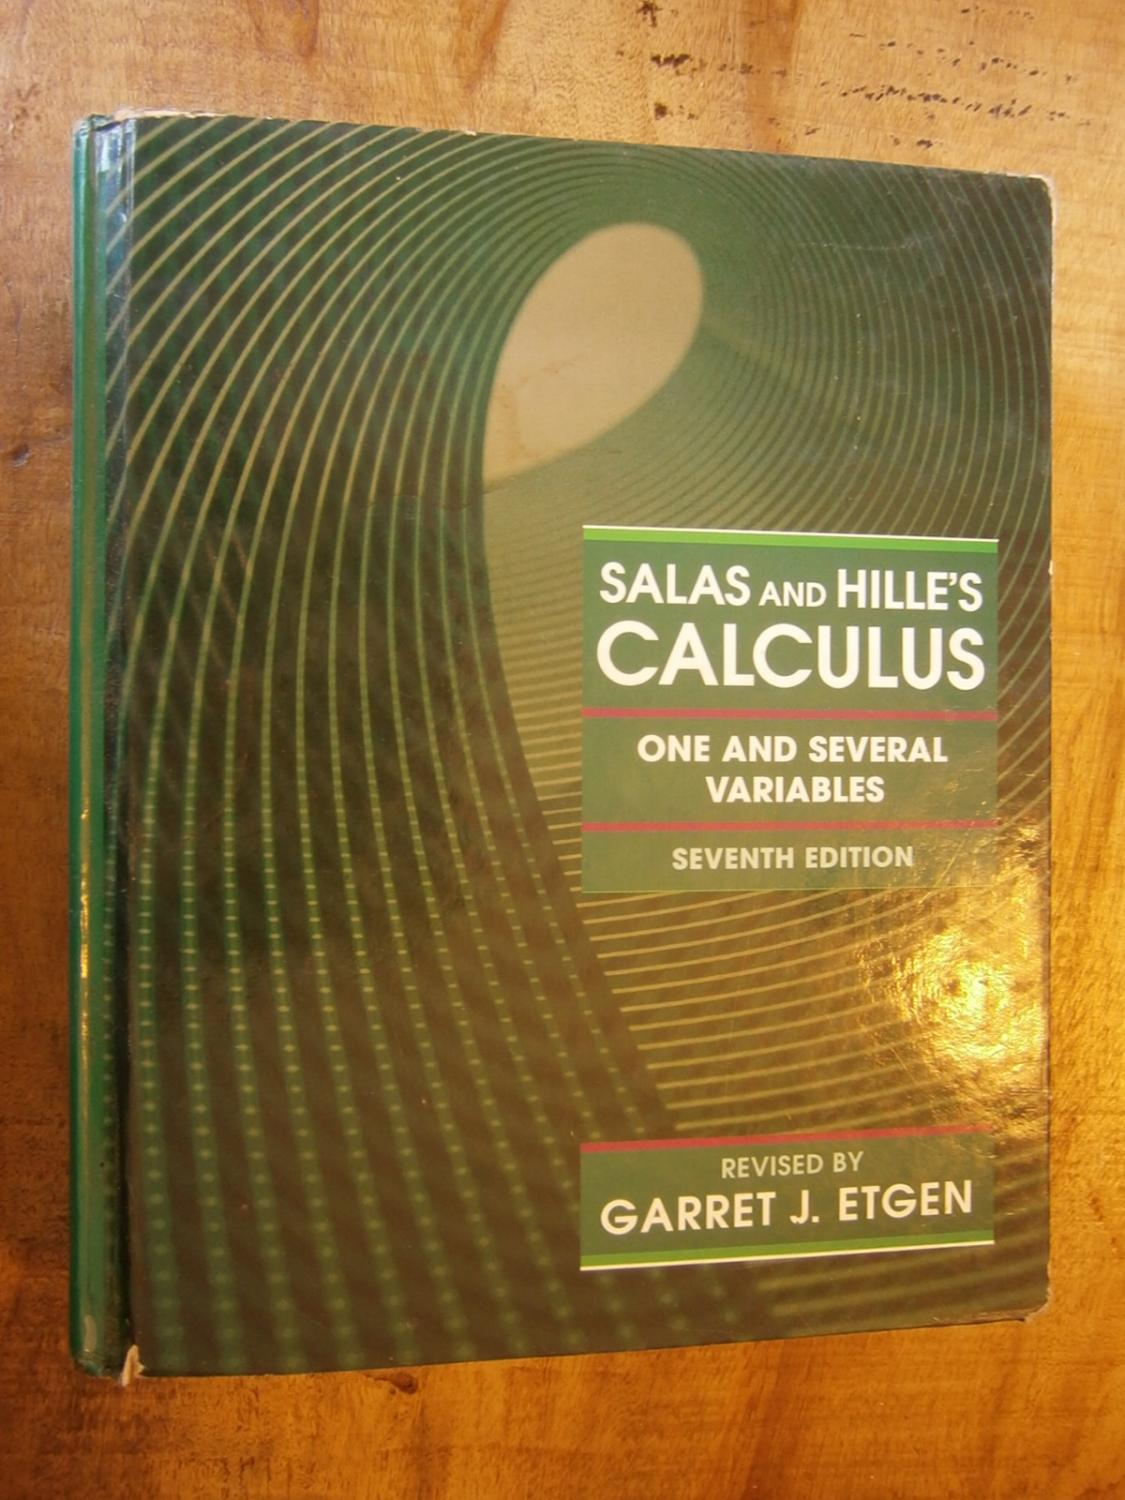 Calculus One And several variables 10th edition Solutions